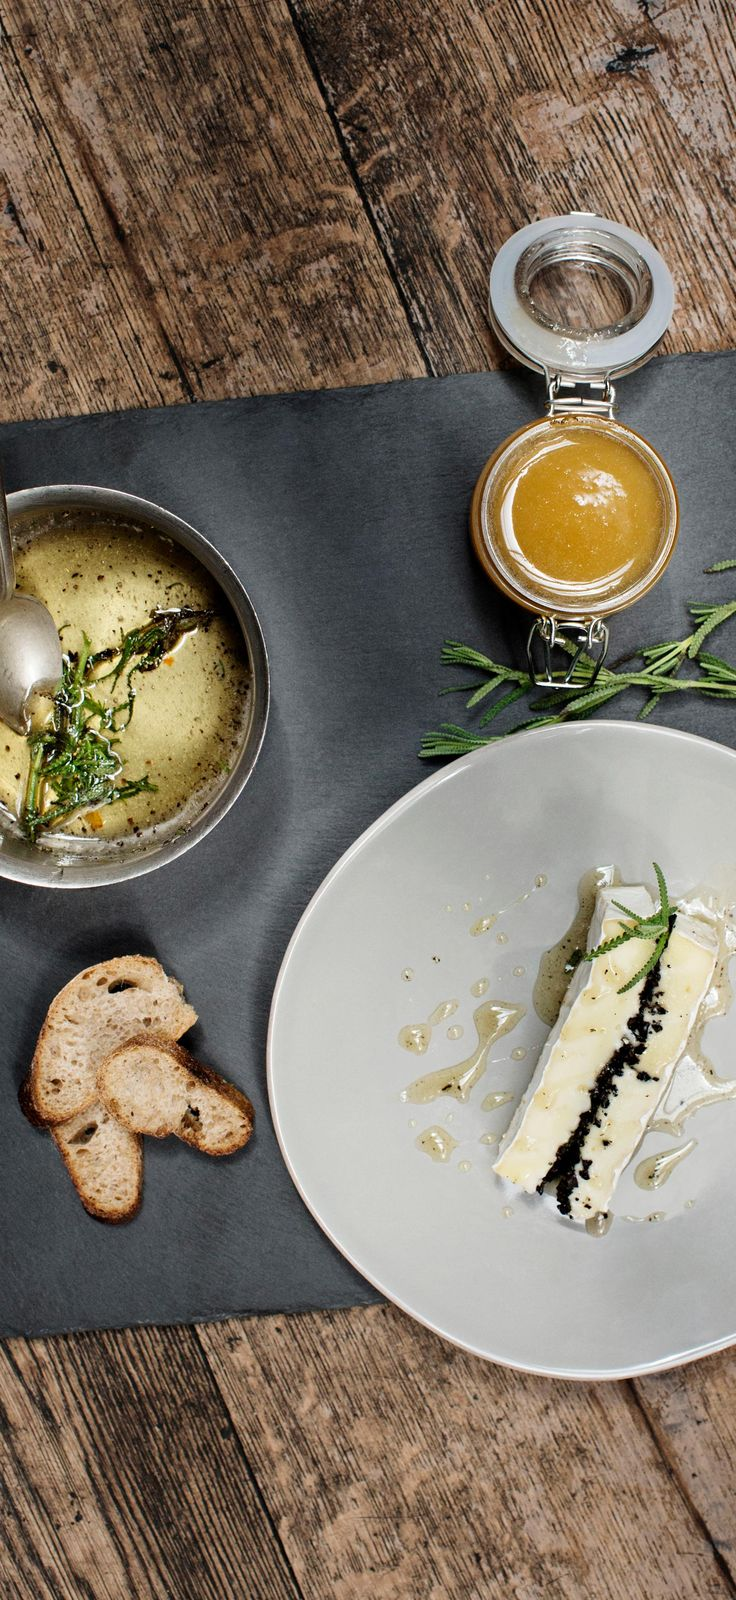 Let the unique, earthy flavor of black truffles mingle with savory Président Brie and sweet lavender honey in this perfect starter.